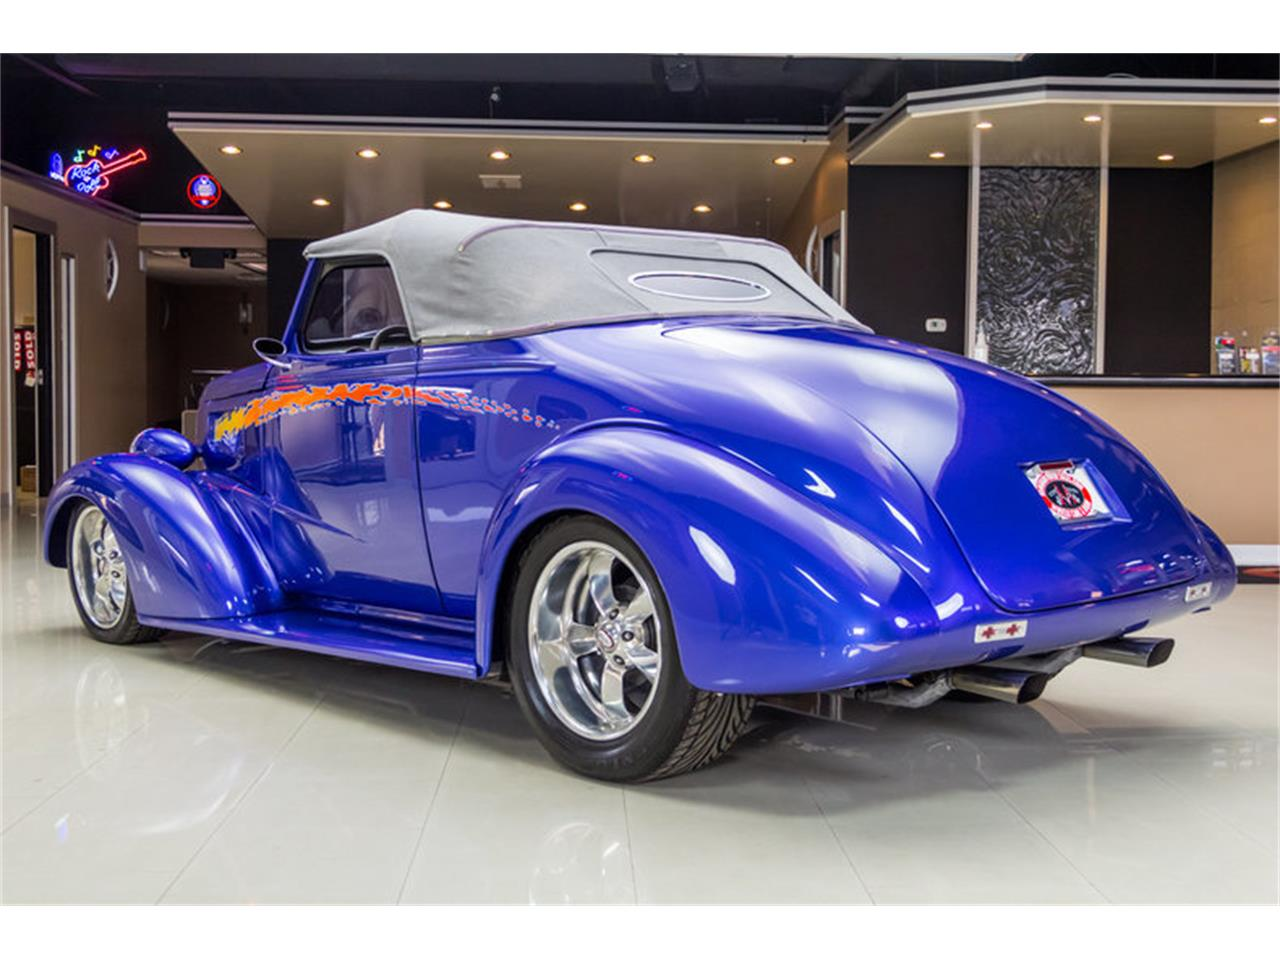 Large Picture of Classic 1937 Chevrolet Street Rod - $59,900.00 Offered by Vanguard Motor Sales - LCW7